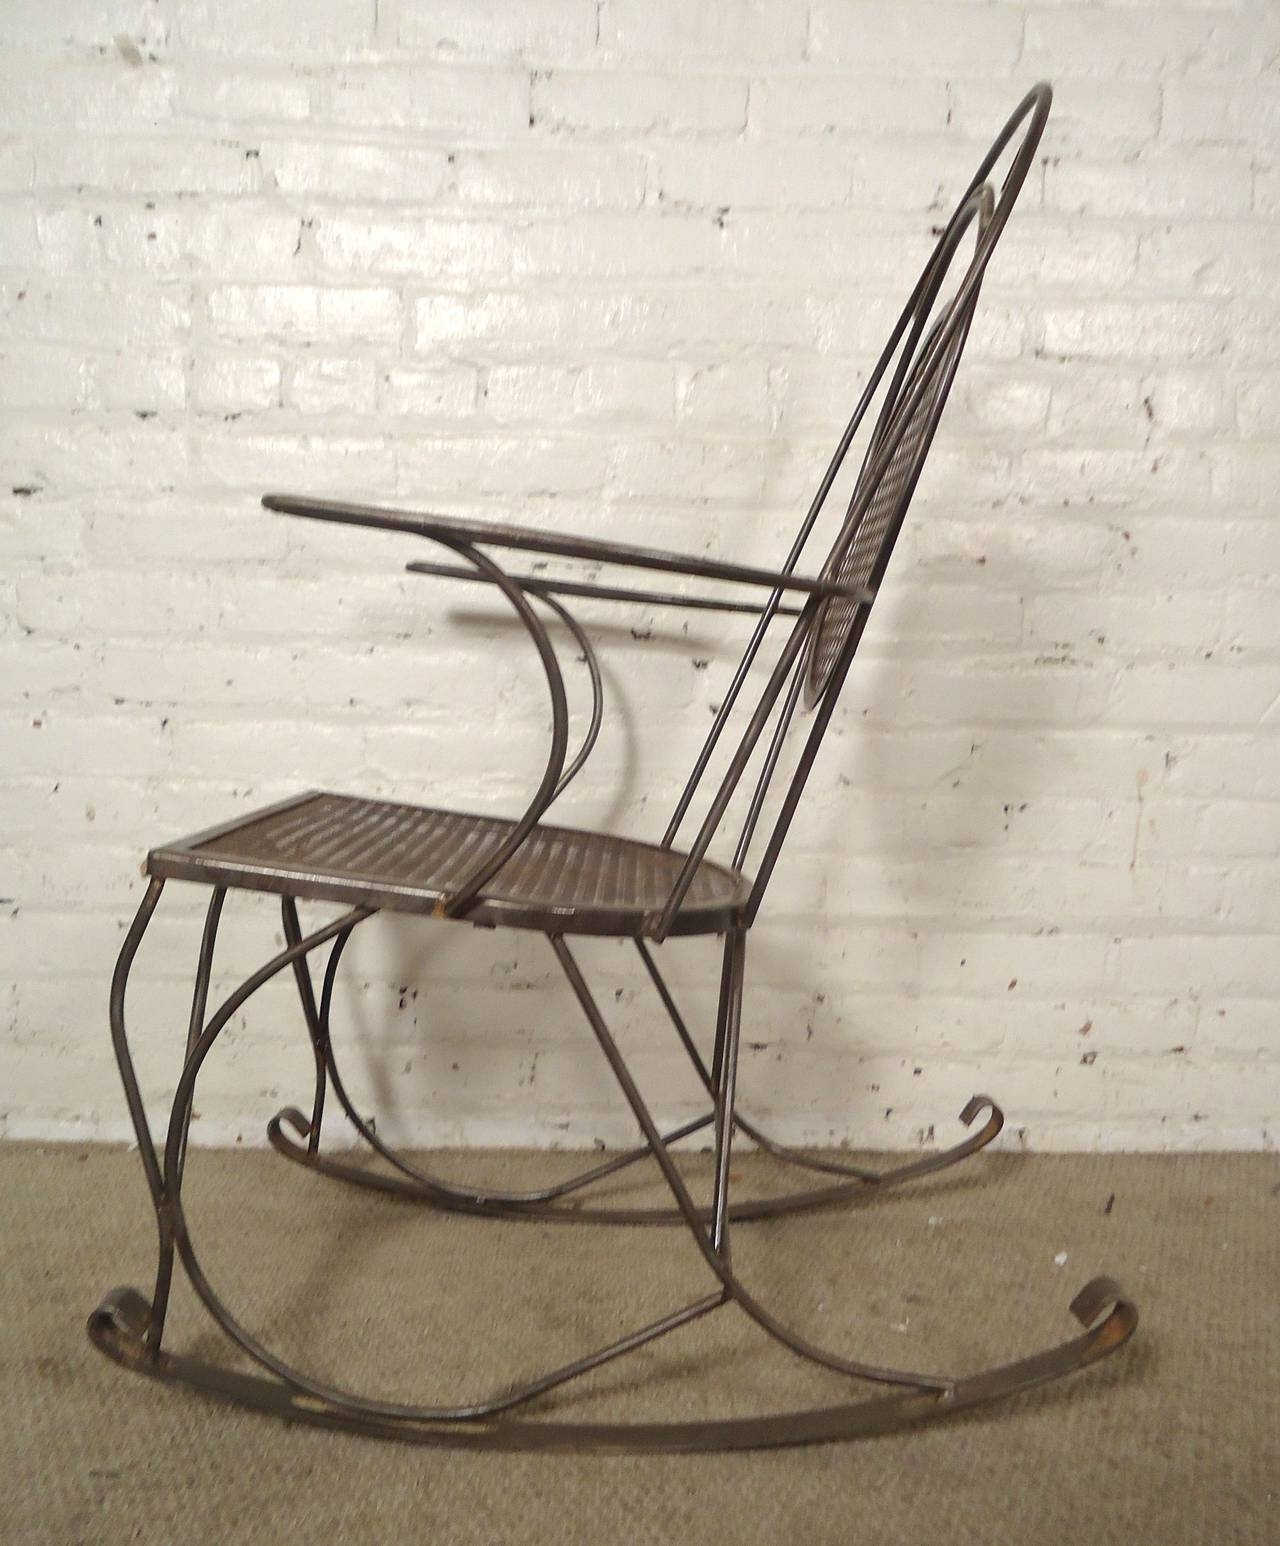 Vintage Outdoor Metal Rocking Chairs Designs Chair Patio Table And with Popular Retro Outdoor Rocking Chairs